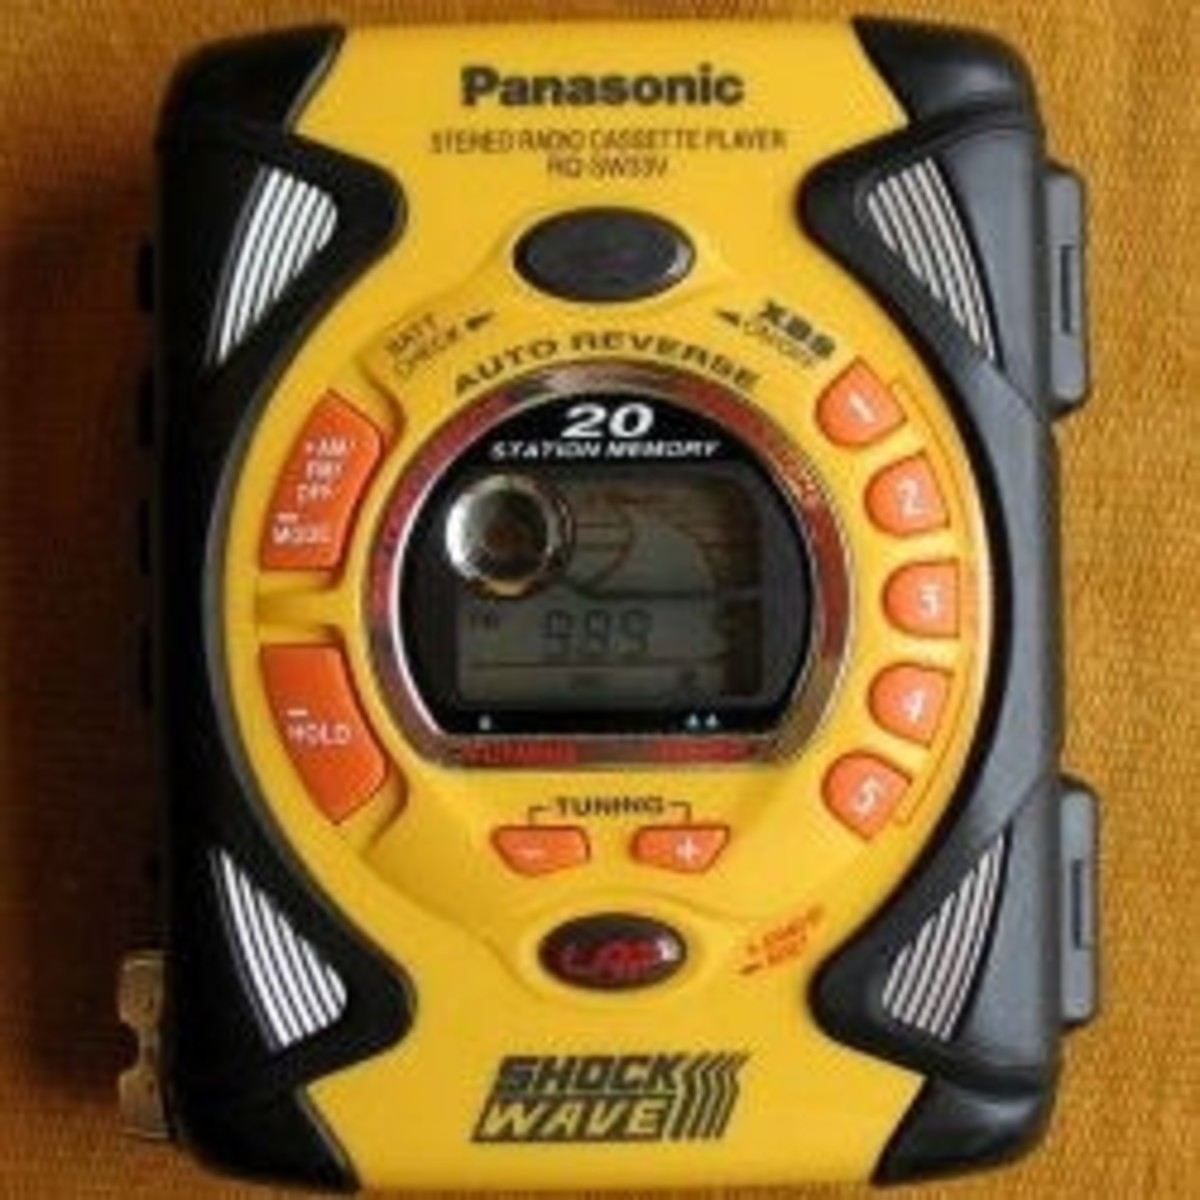 Waterproof Cassette Players: Sony Walkman, Panasonic Shockwave